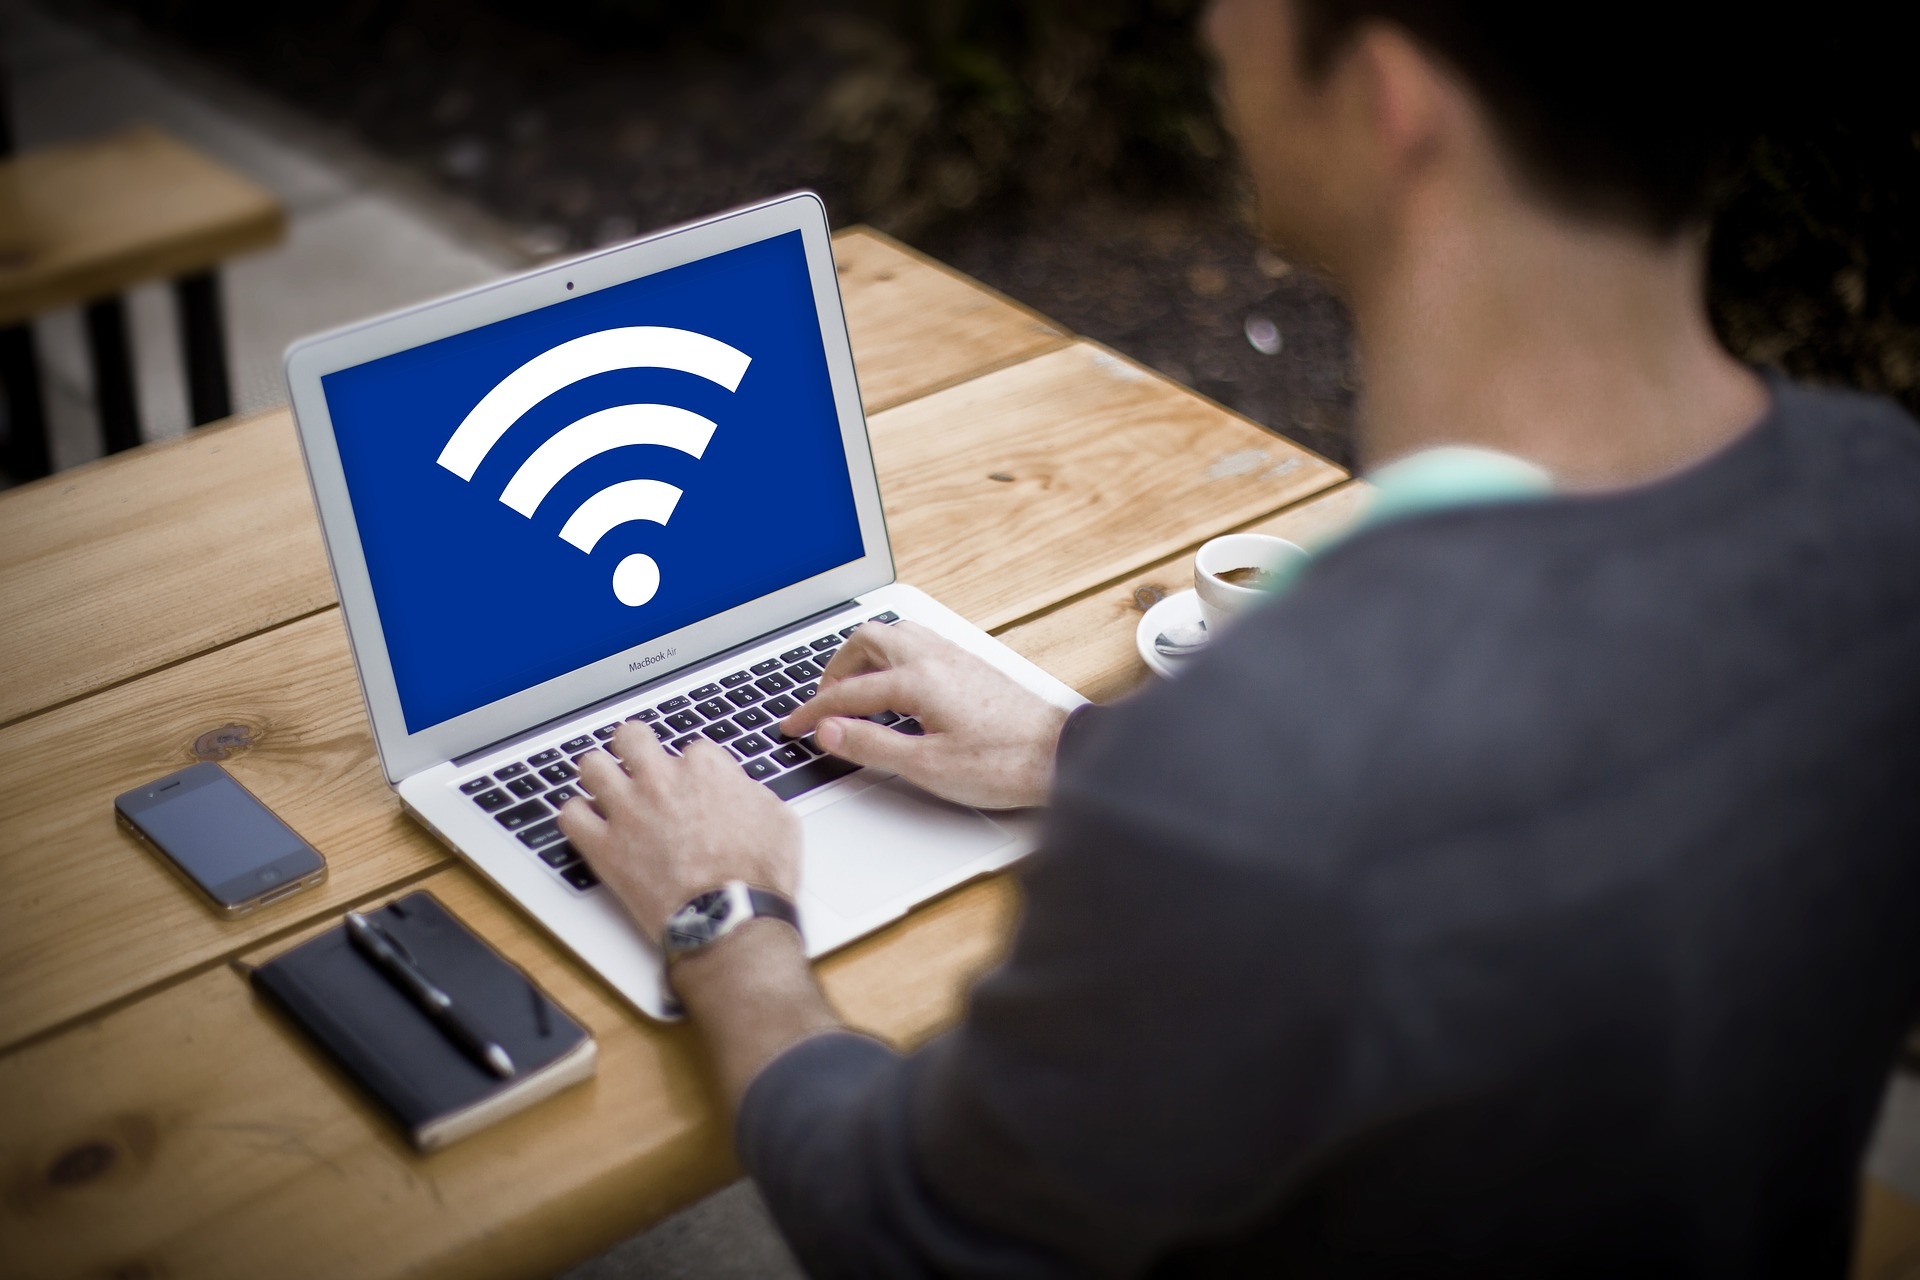 The Best WiFi Passes Keep The Internet Available At All Times